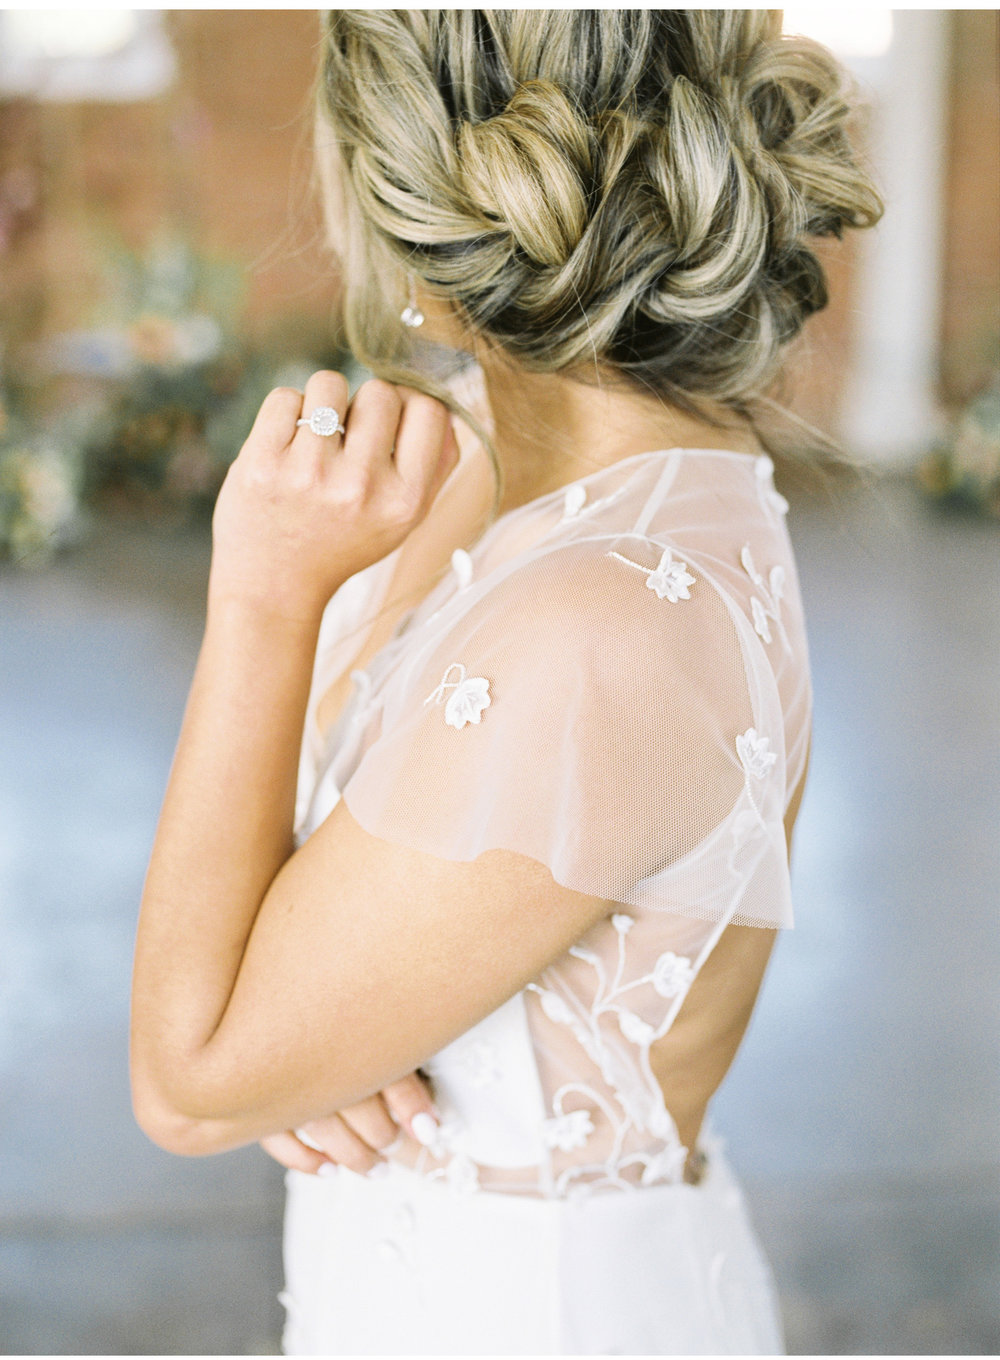 Malibu-Wedding-Photographer-Natalie-Schutt-Photography-Inspired-by-This_17.jpg